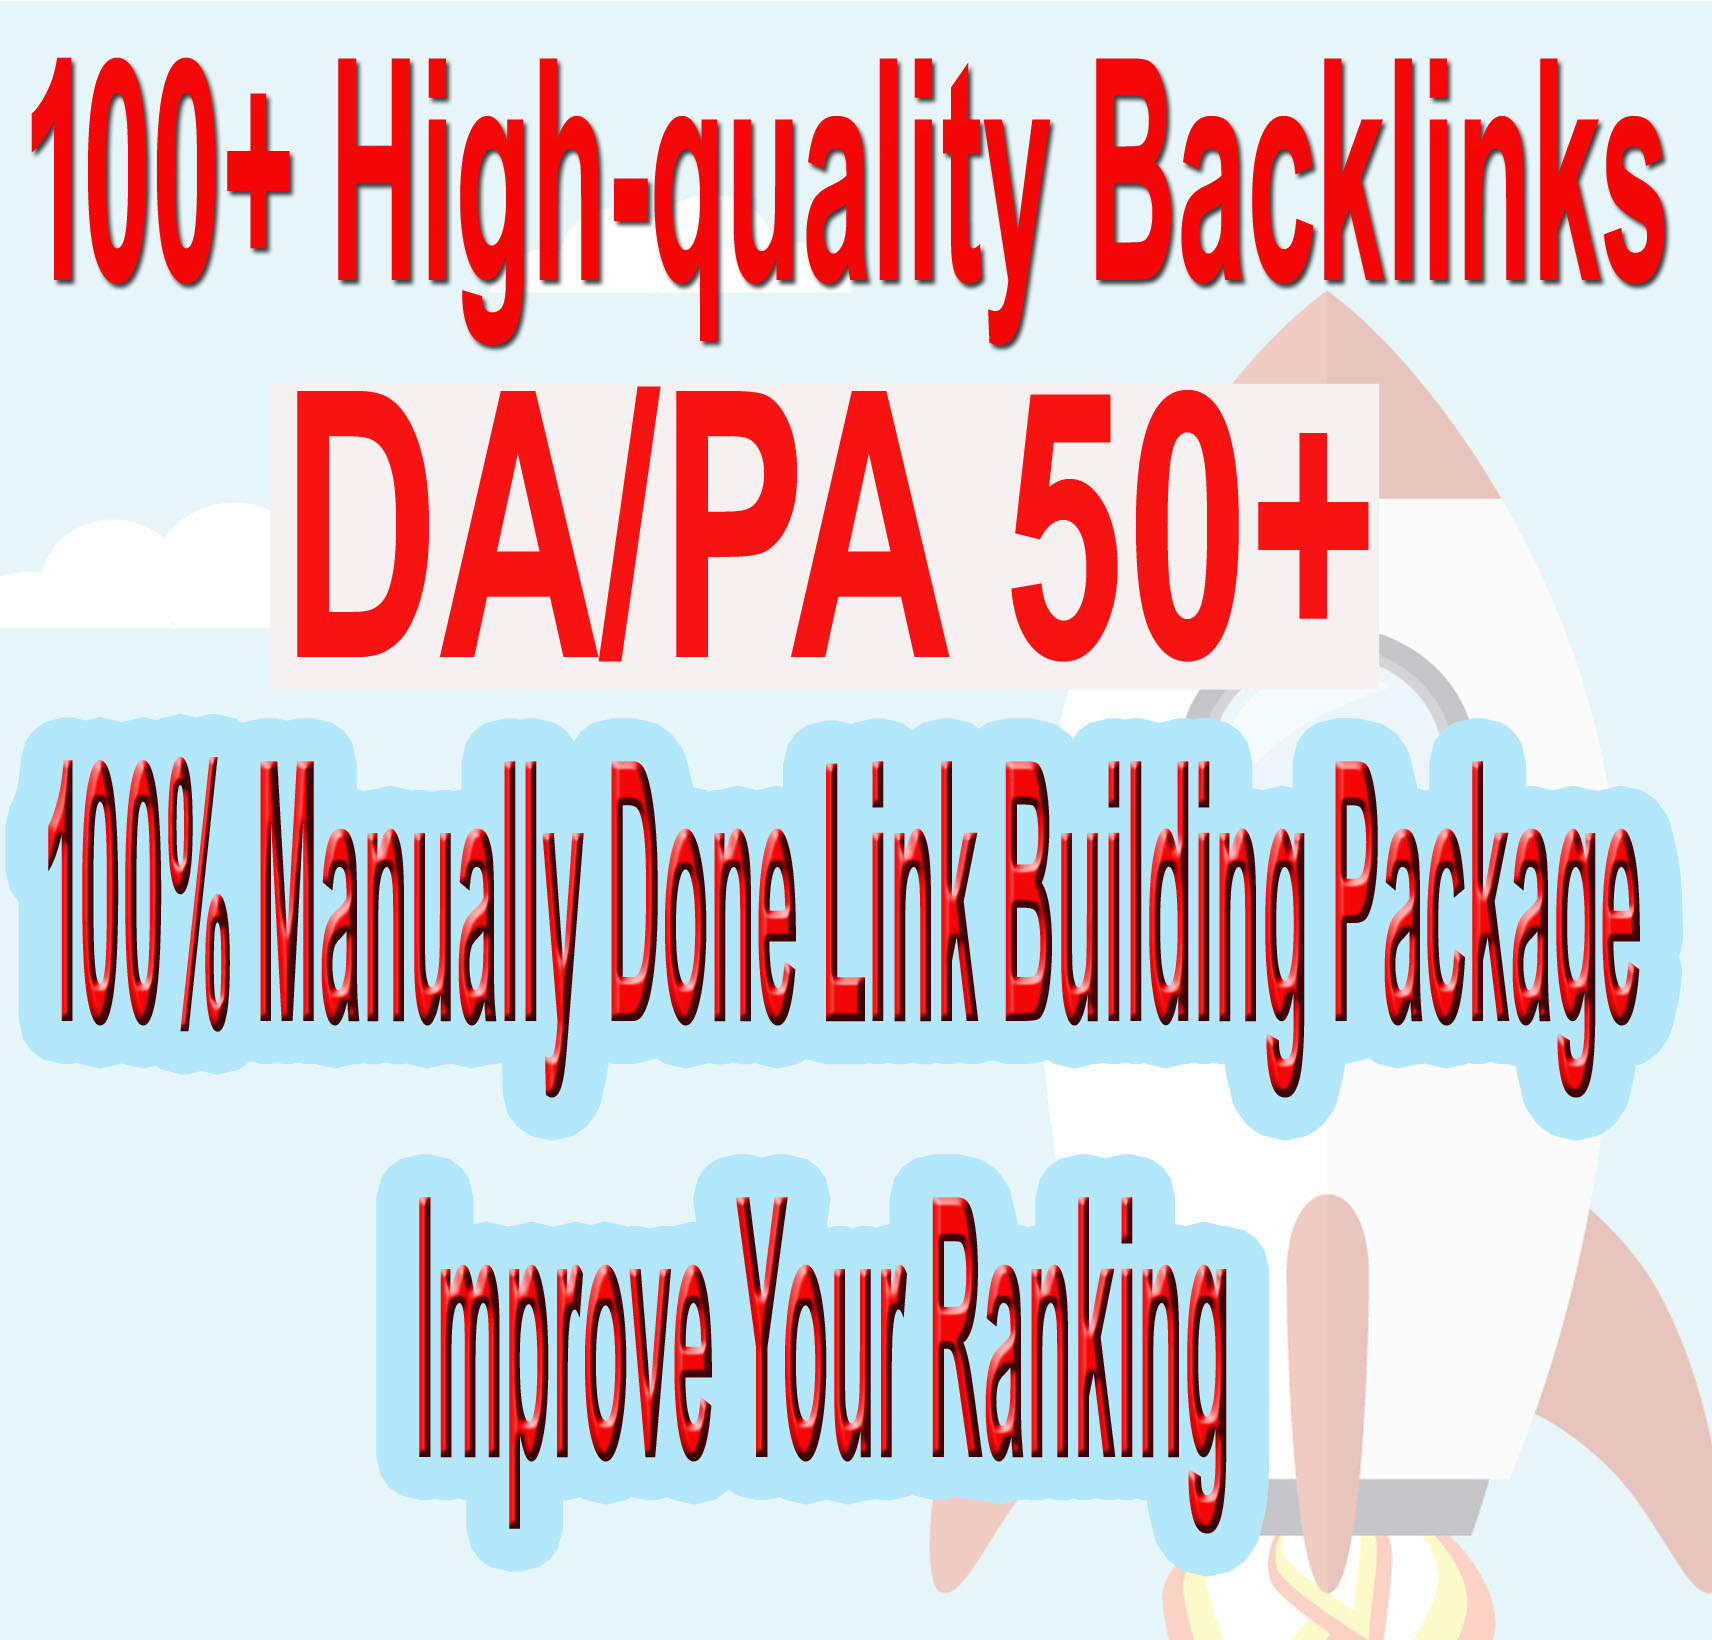 2019 SEO Package Manually Done Link Building Package Improve Your Ranking